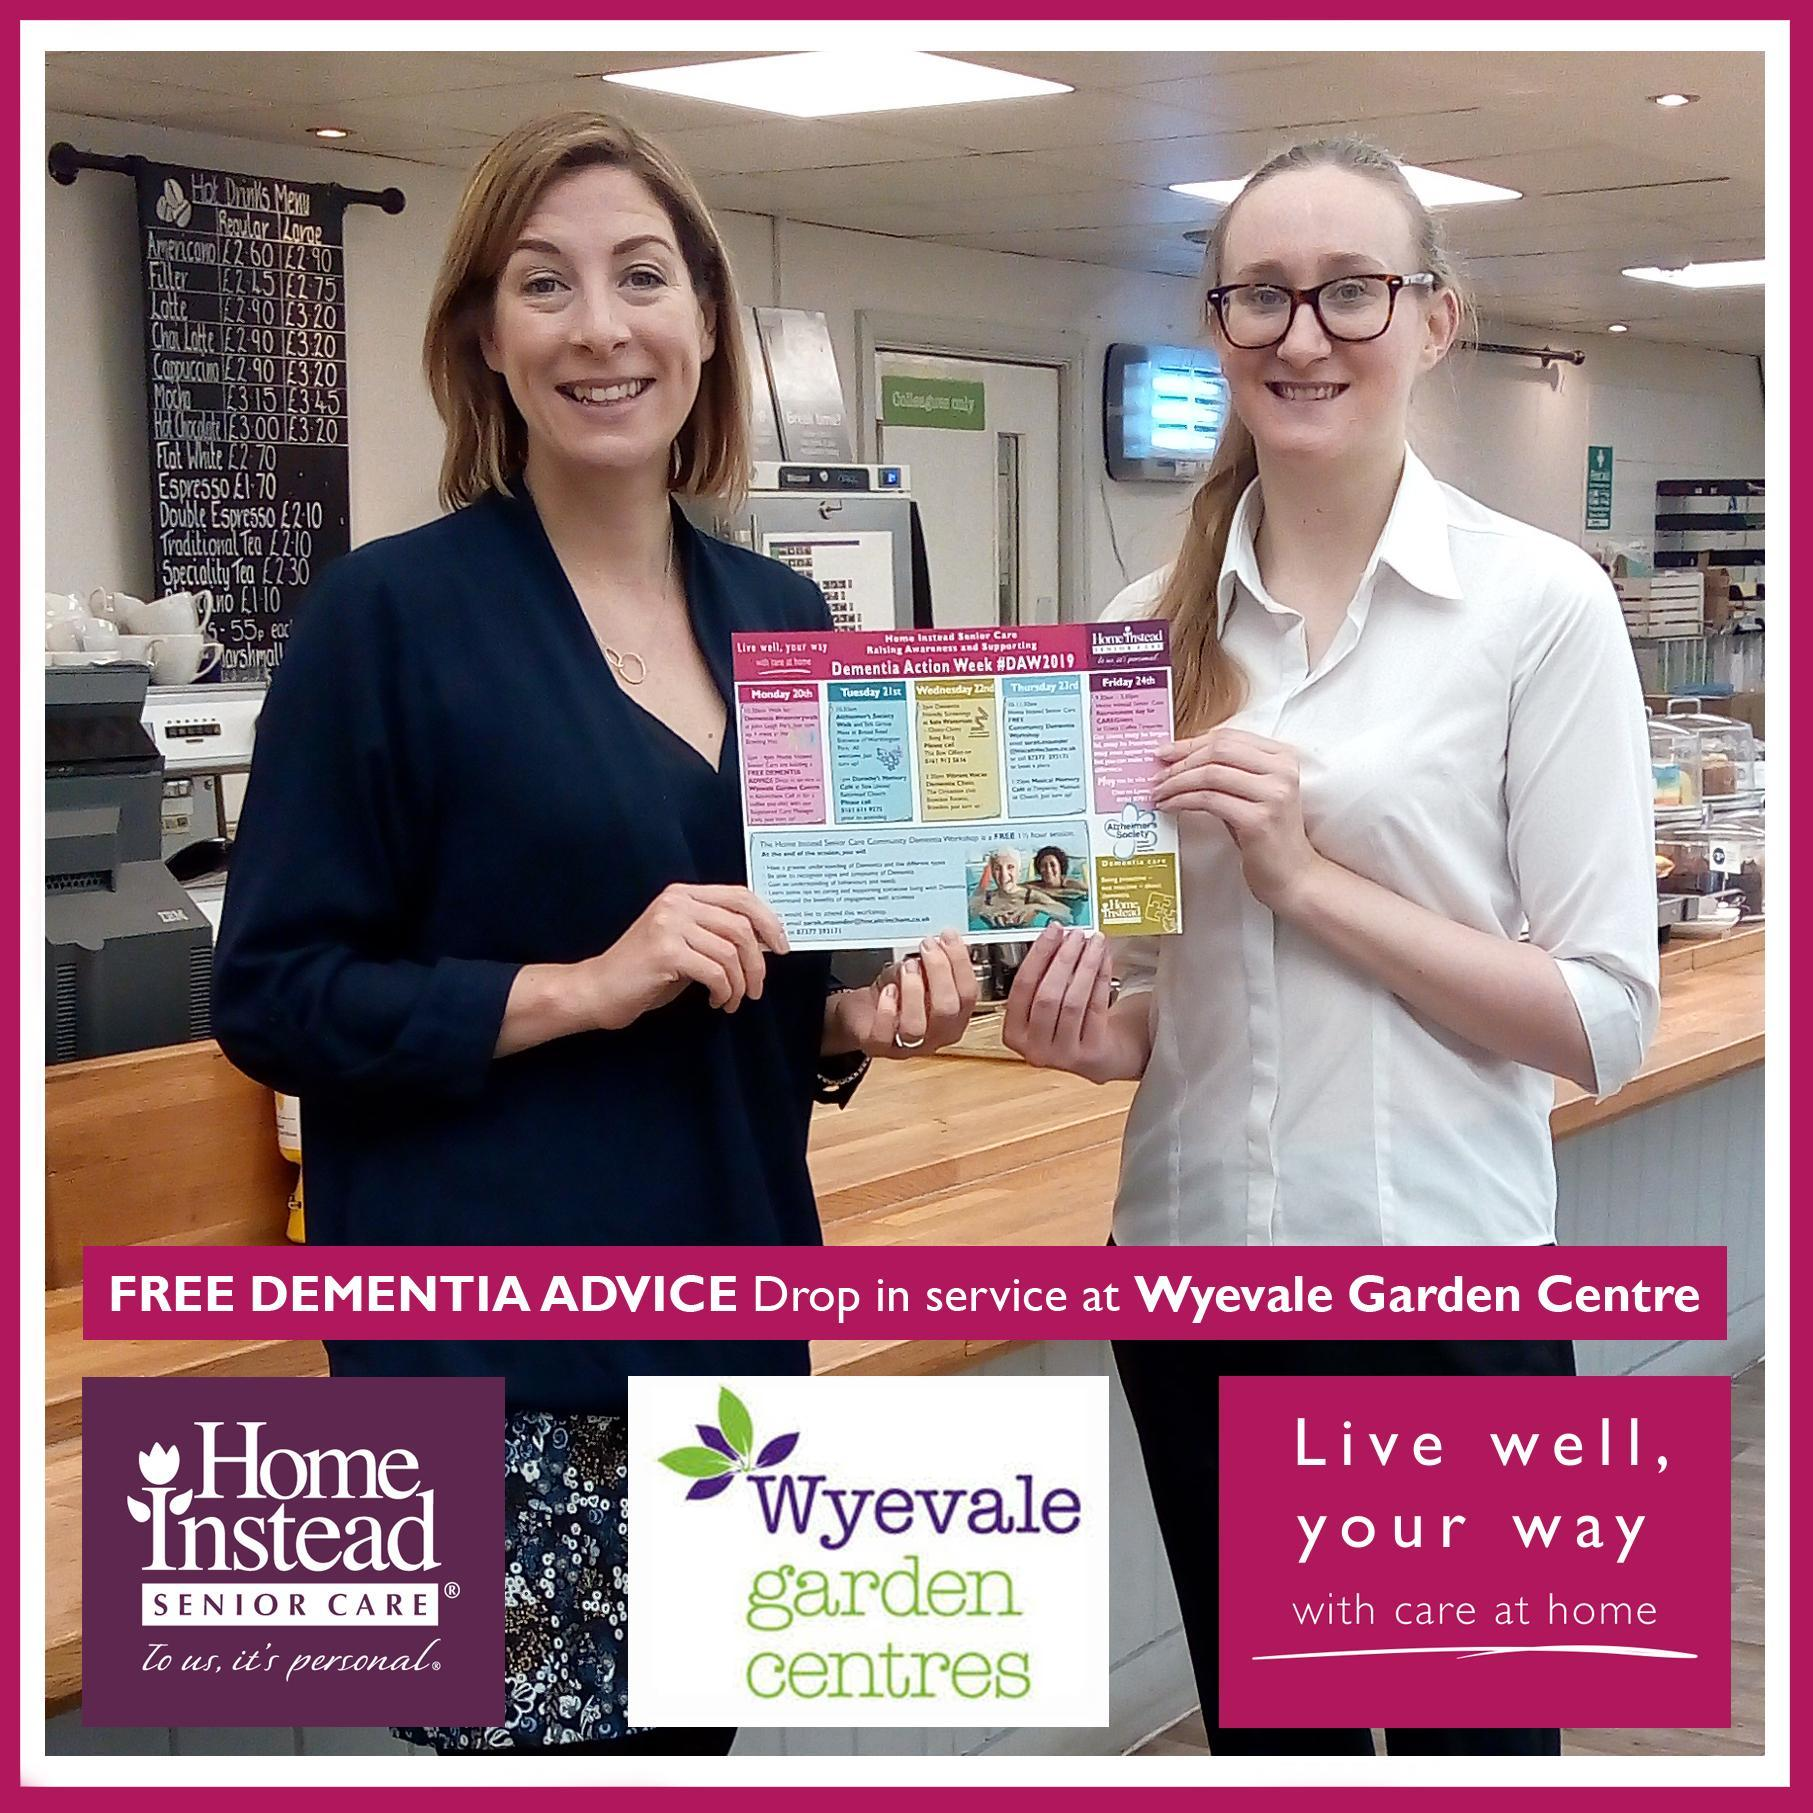 free dementia advice drop in service at Wyevale Garden Centre